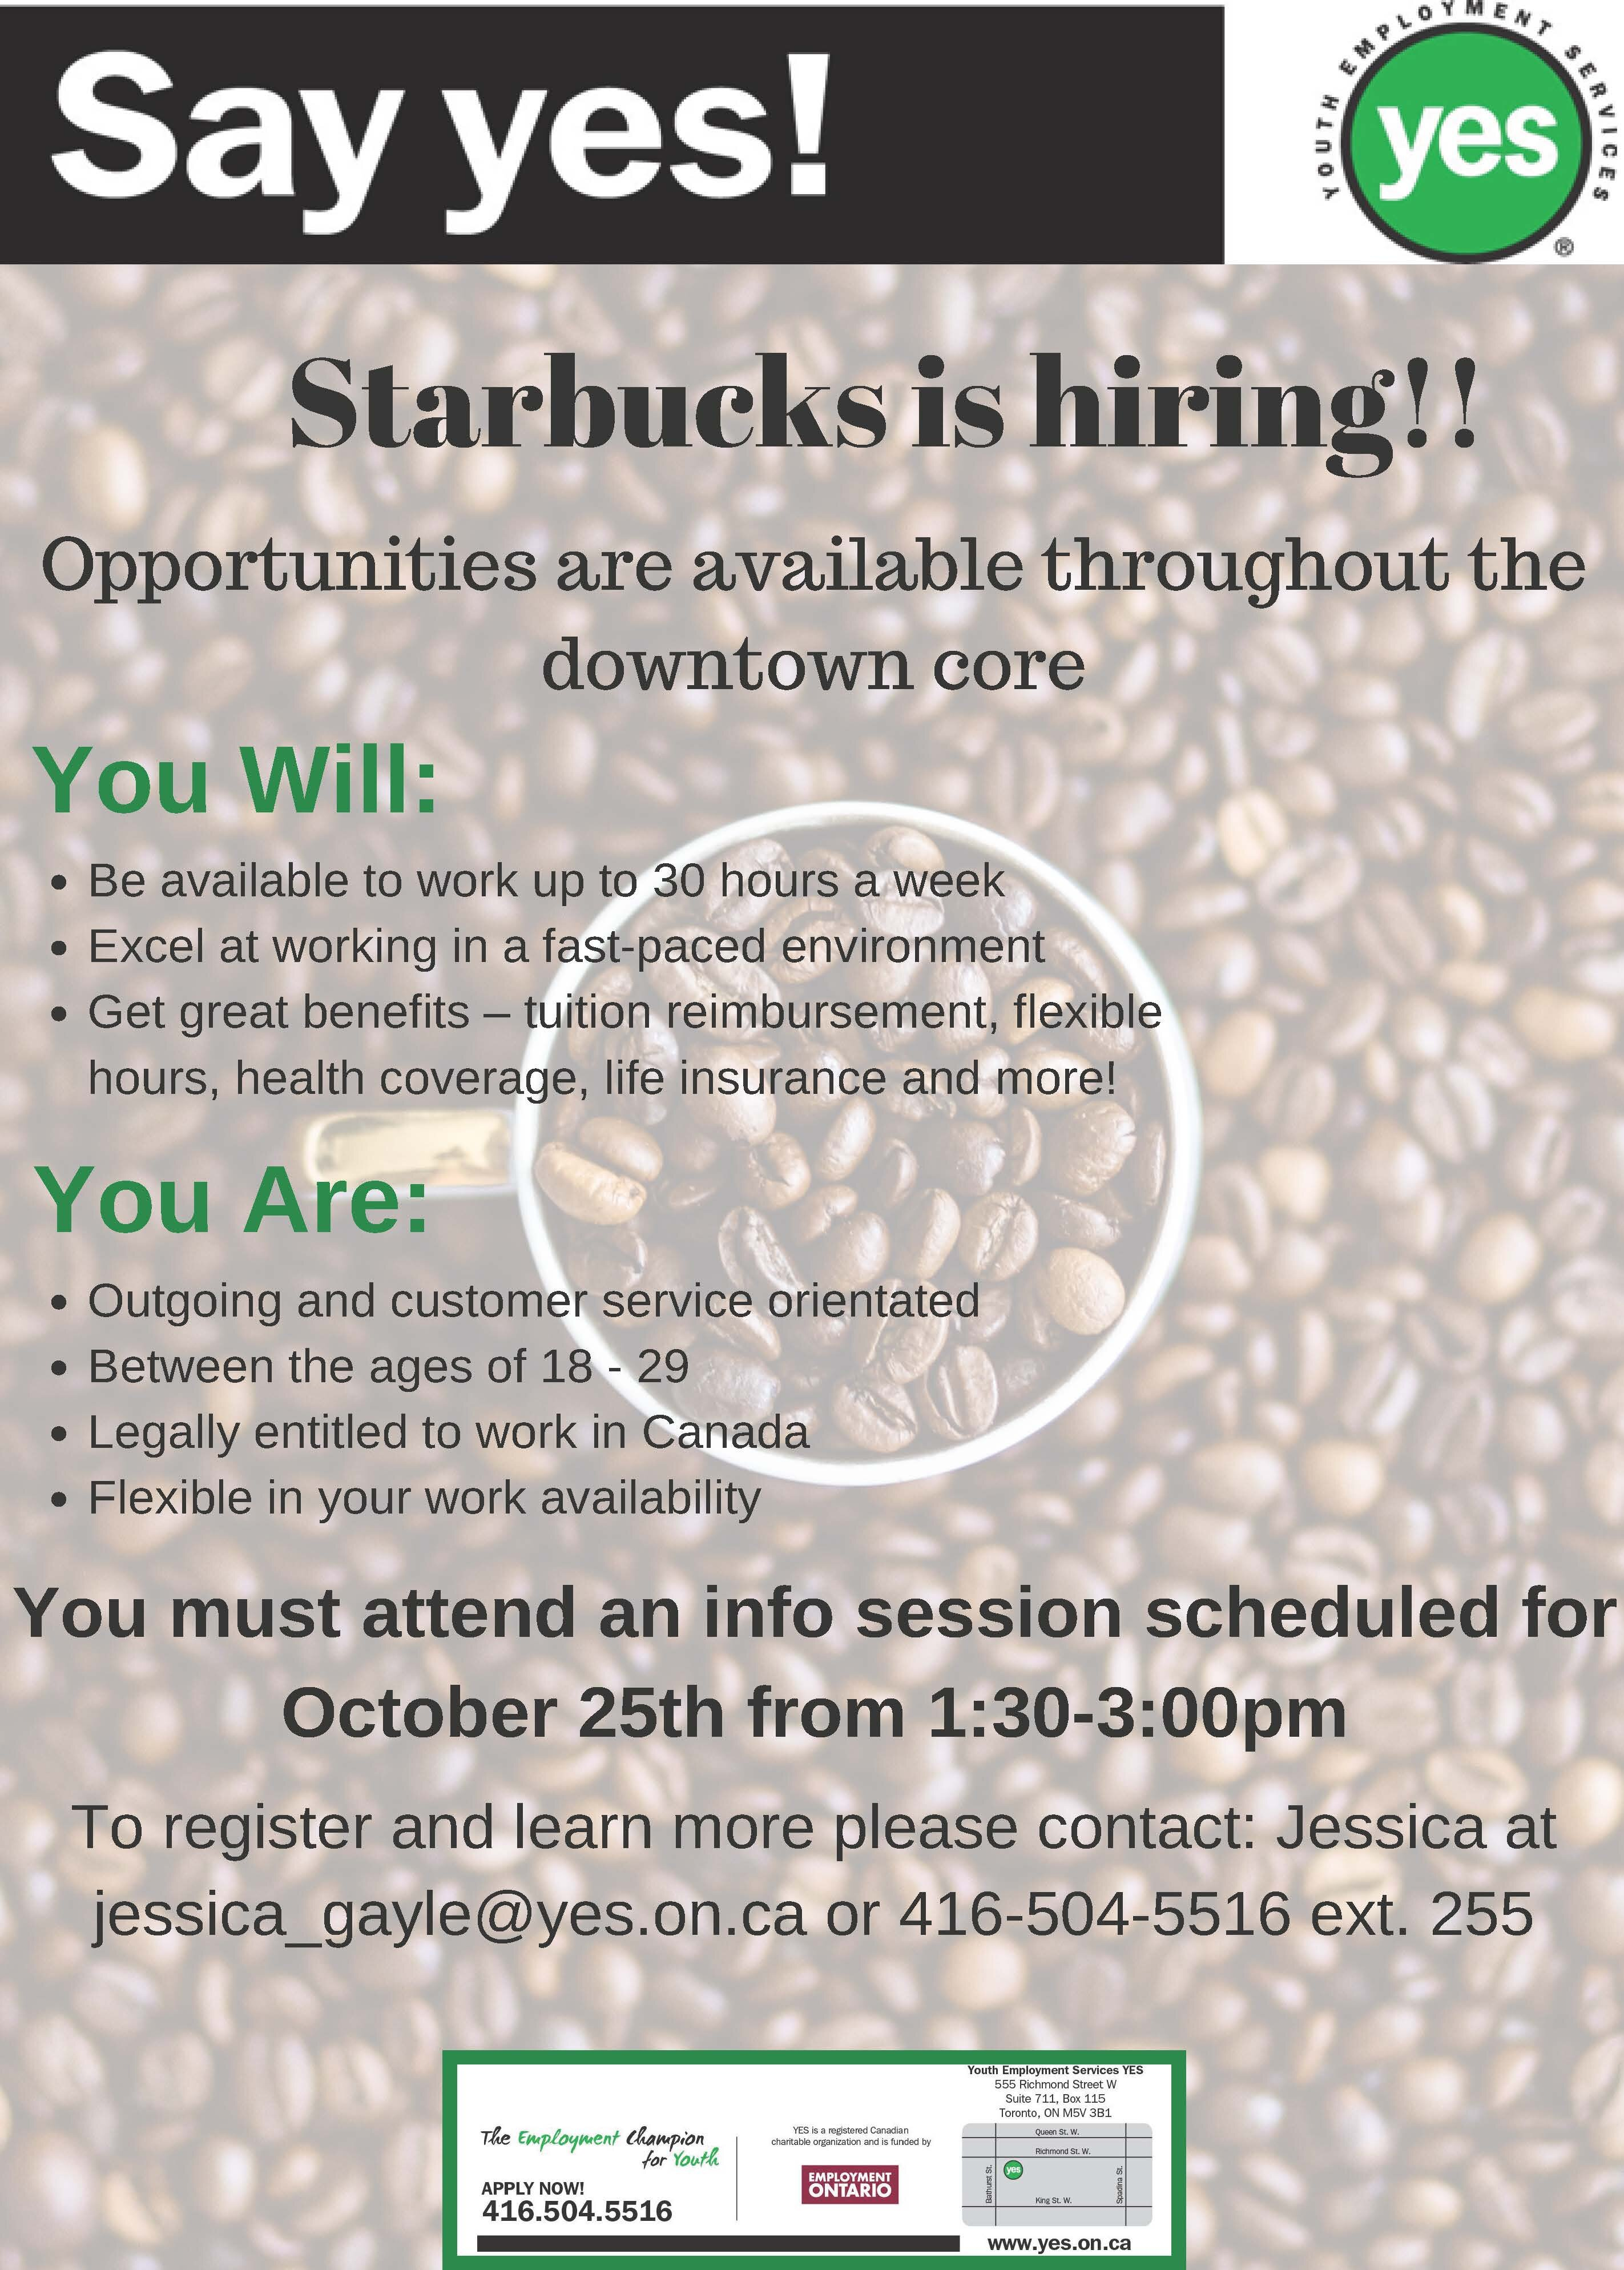 Starbucks is Hiring! | Youth Employment Services YES